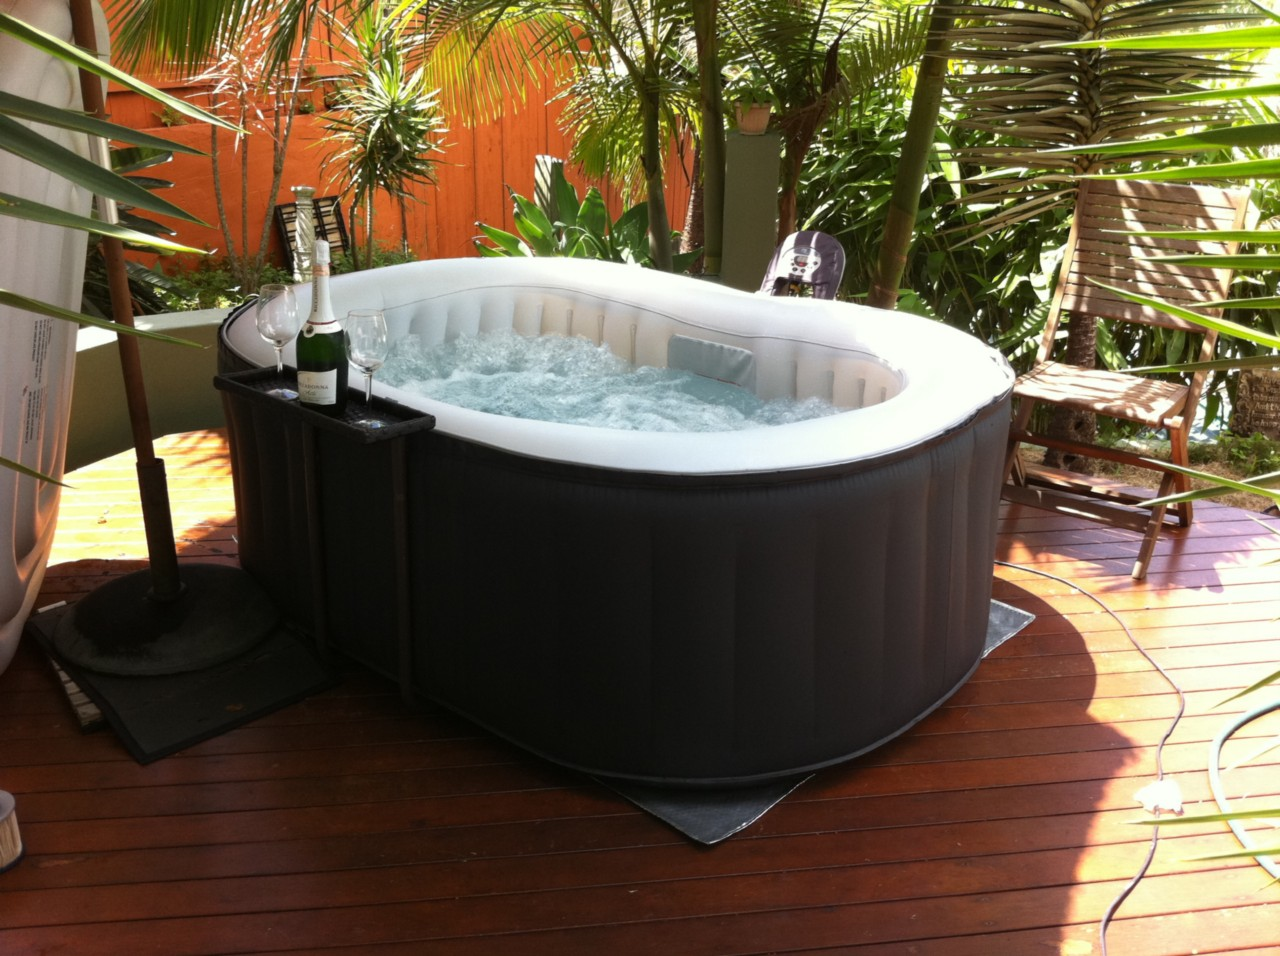 brand new heated hydrotherapy mspa hot tub jacuzzi. Black Bedroom Furniture Sets. Home Design Ideas